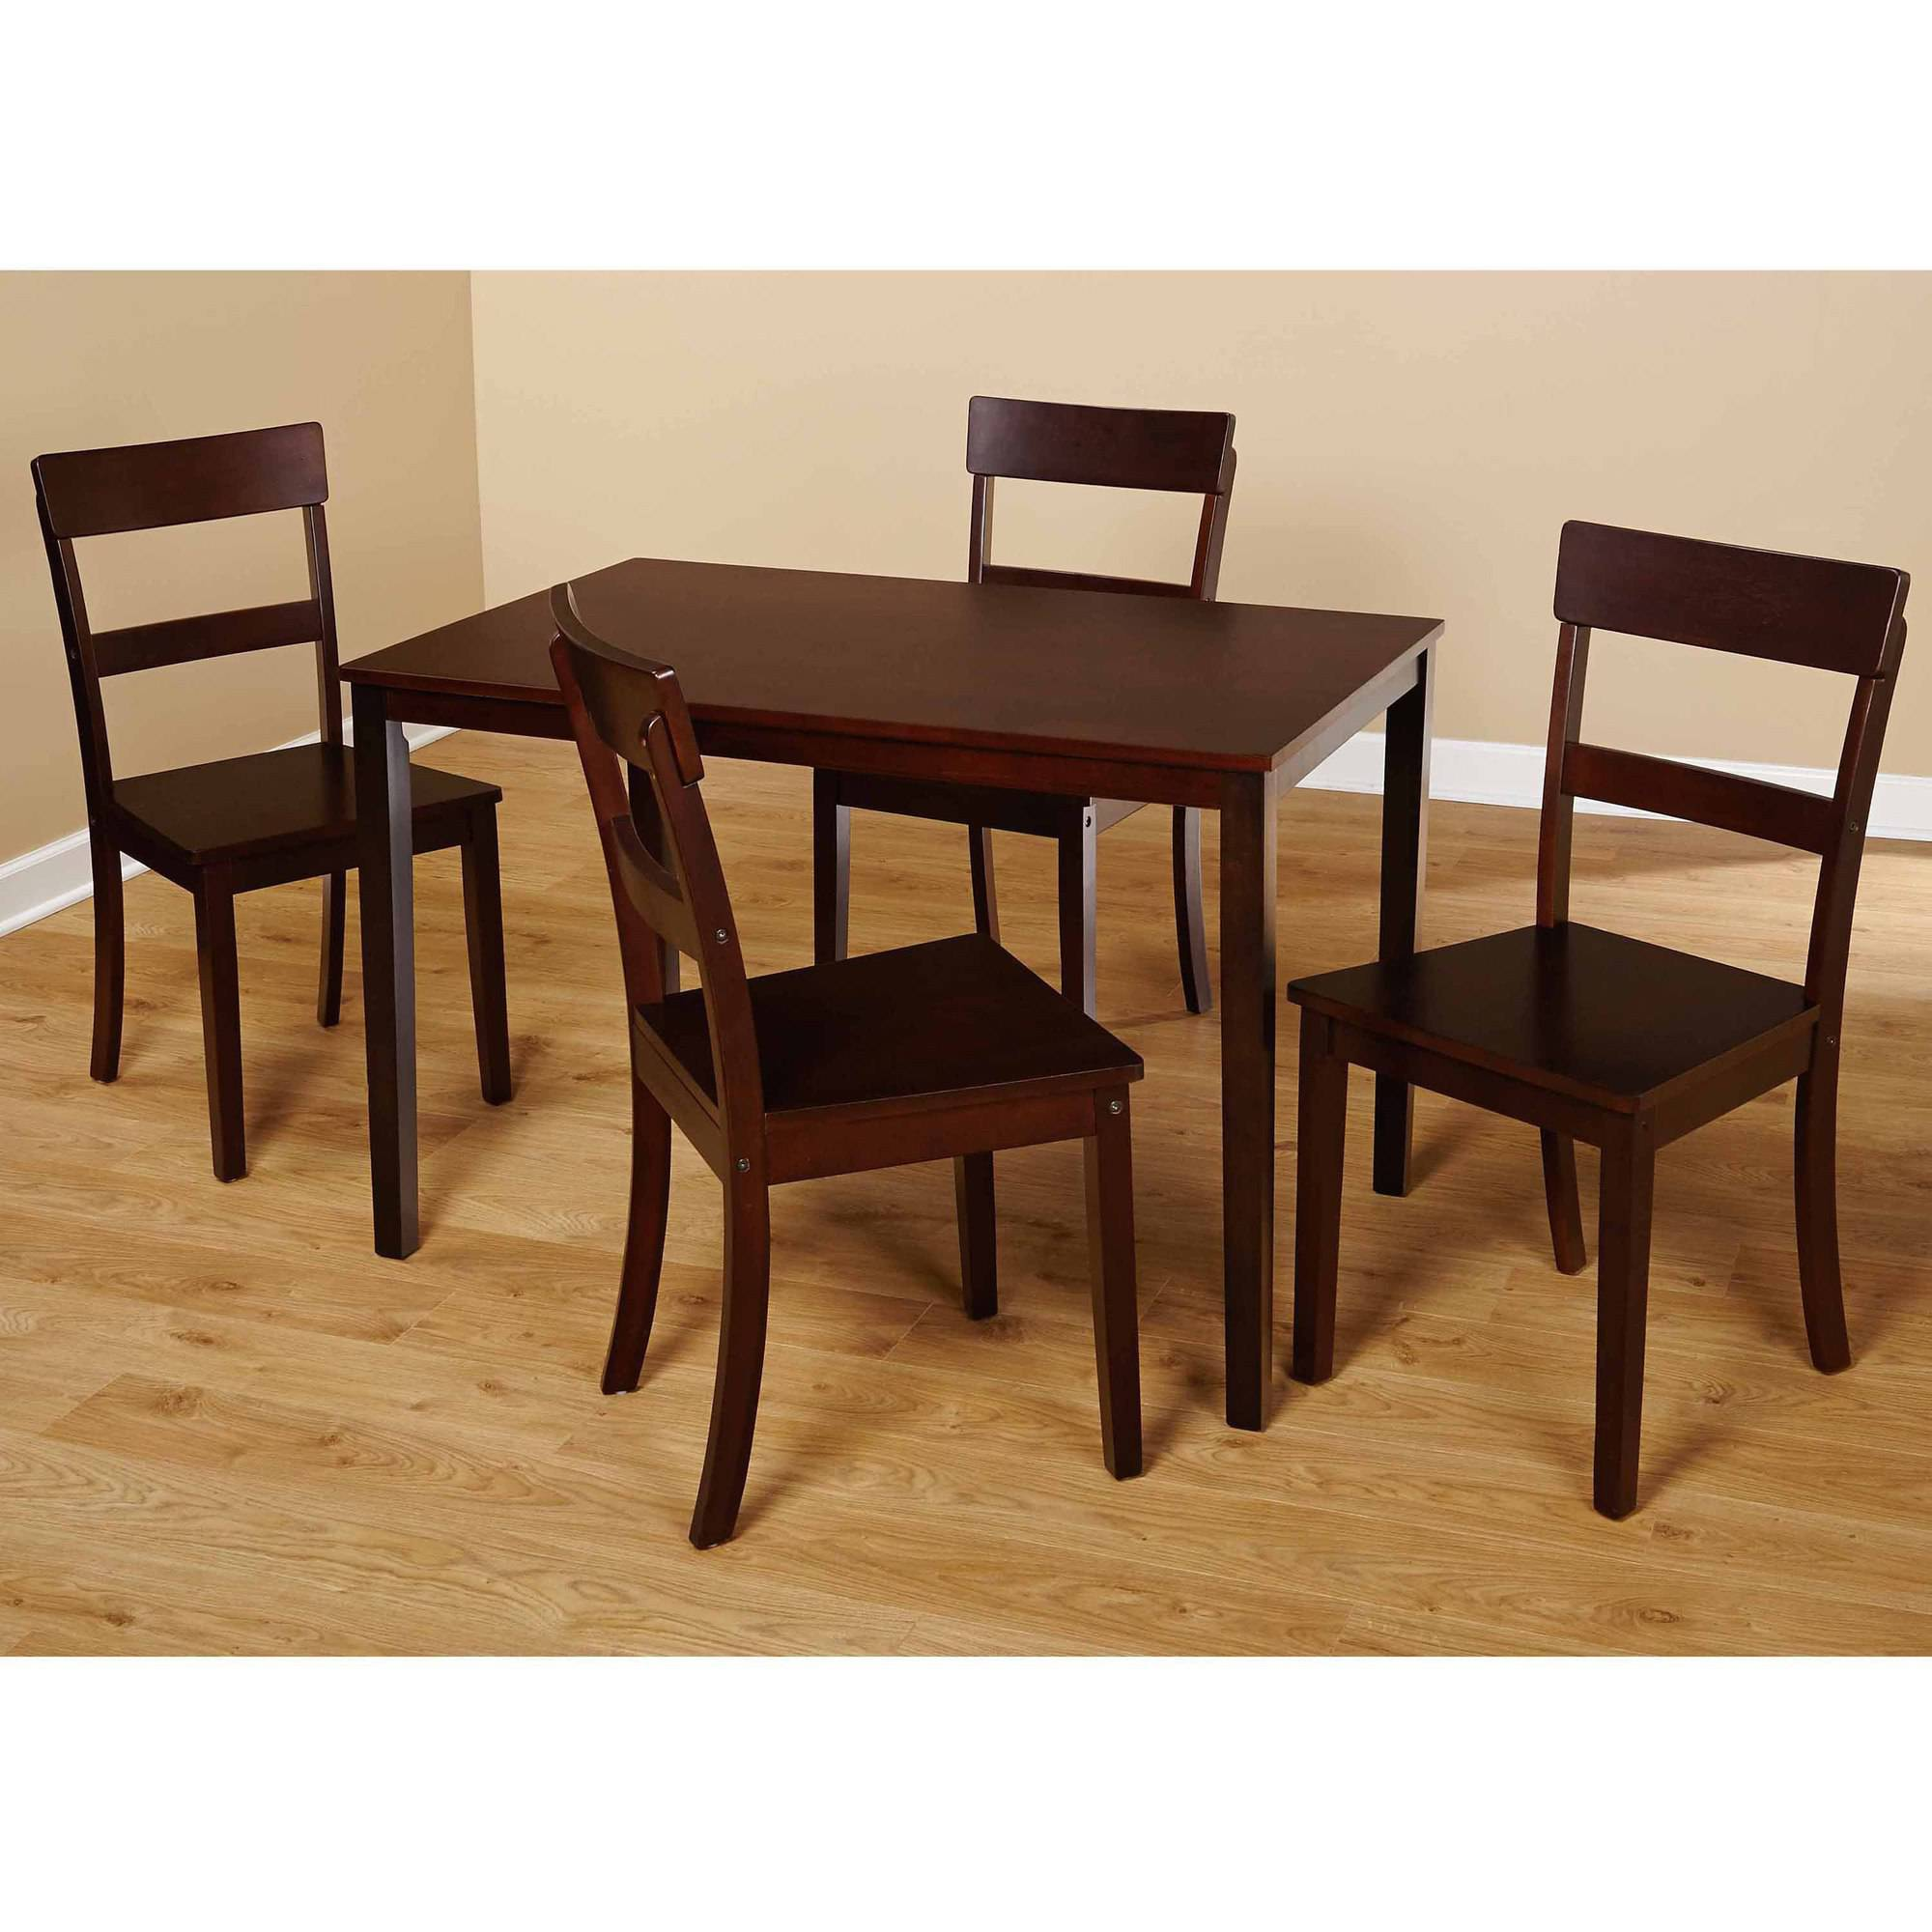 5 Piece Dining Sets beverly 5-piece dining set, multiple finishes - walmart